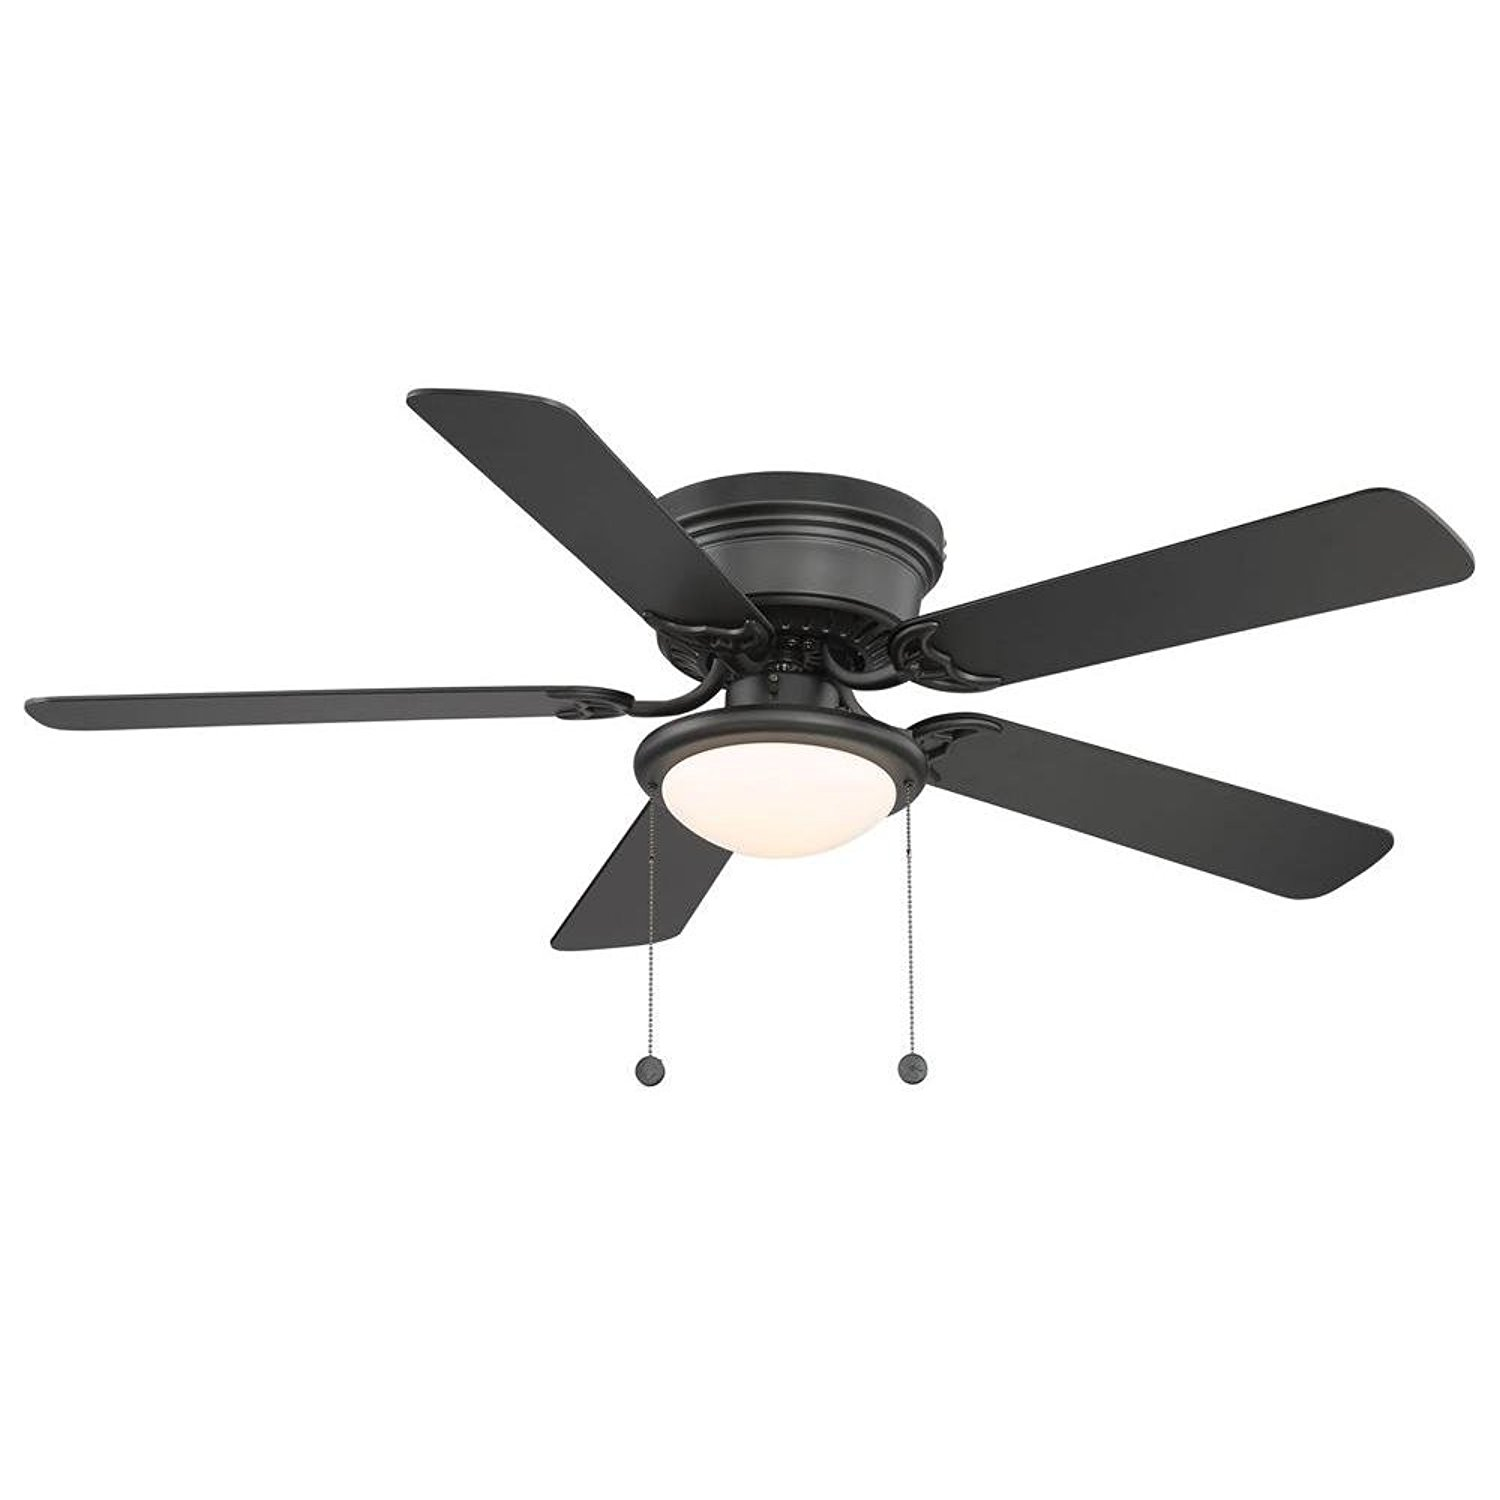 Cheap Ceiling Fans Review – High Quality Fan